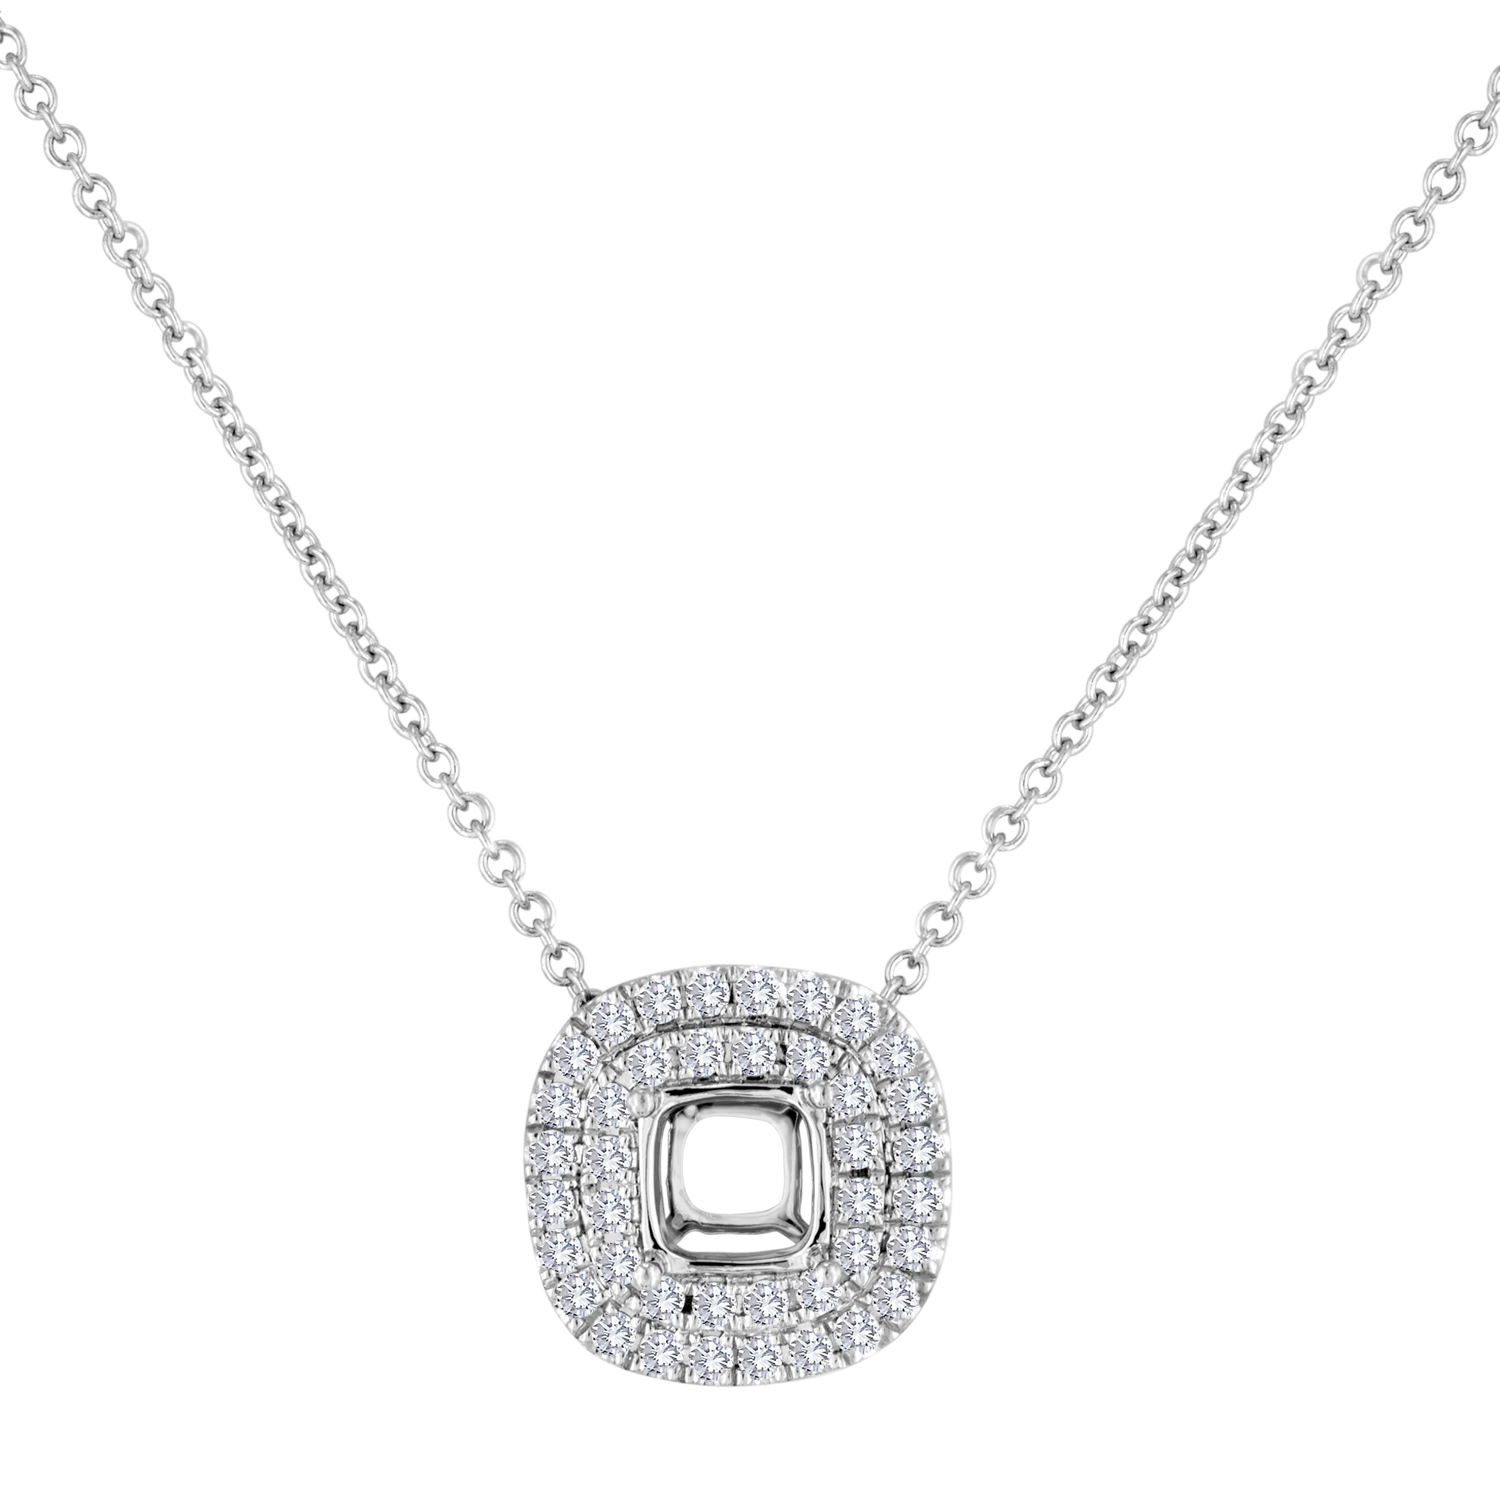 View Double Halo Cushion Frame Pendant